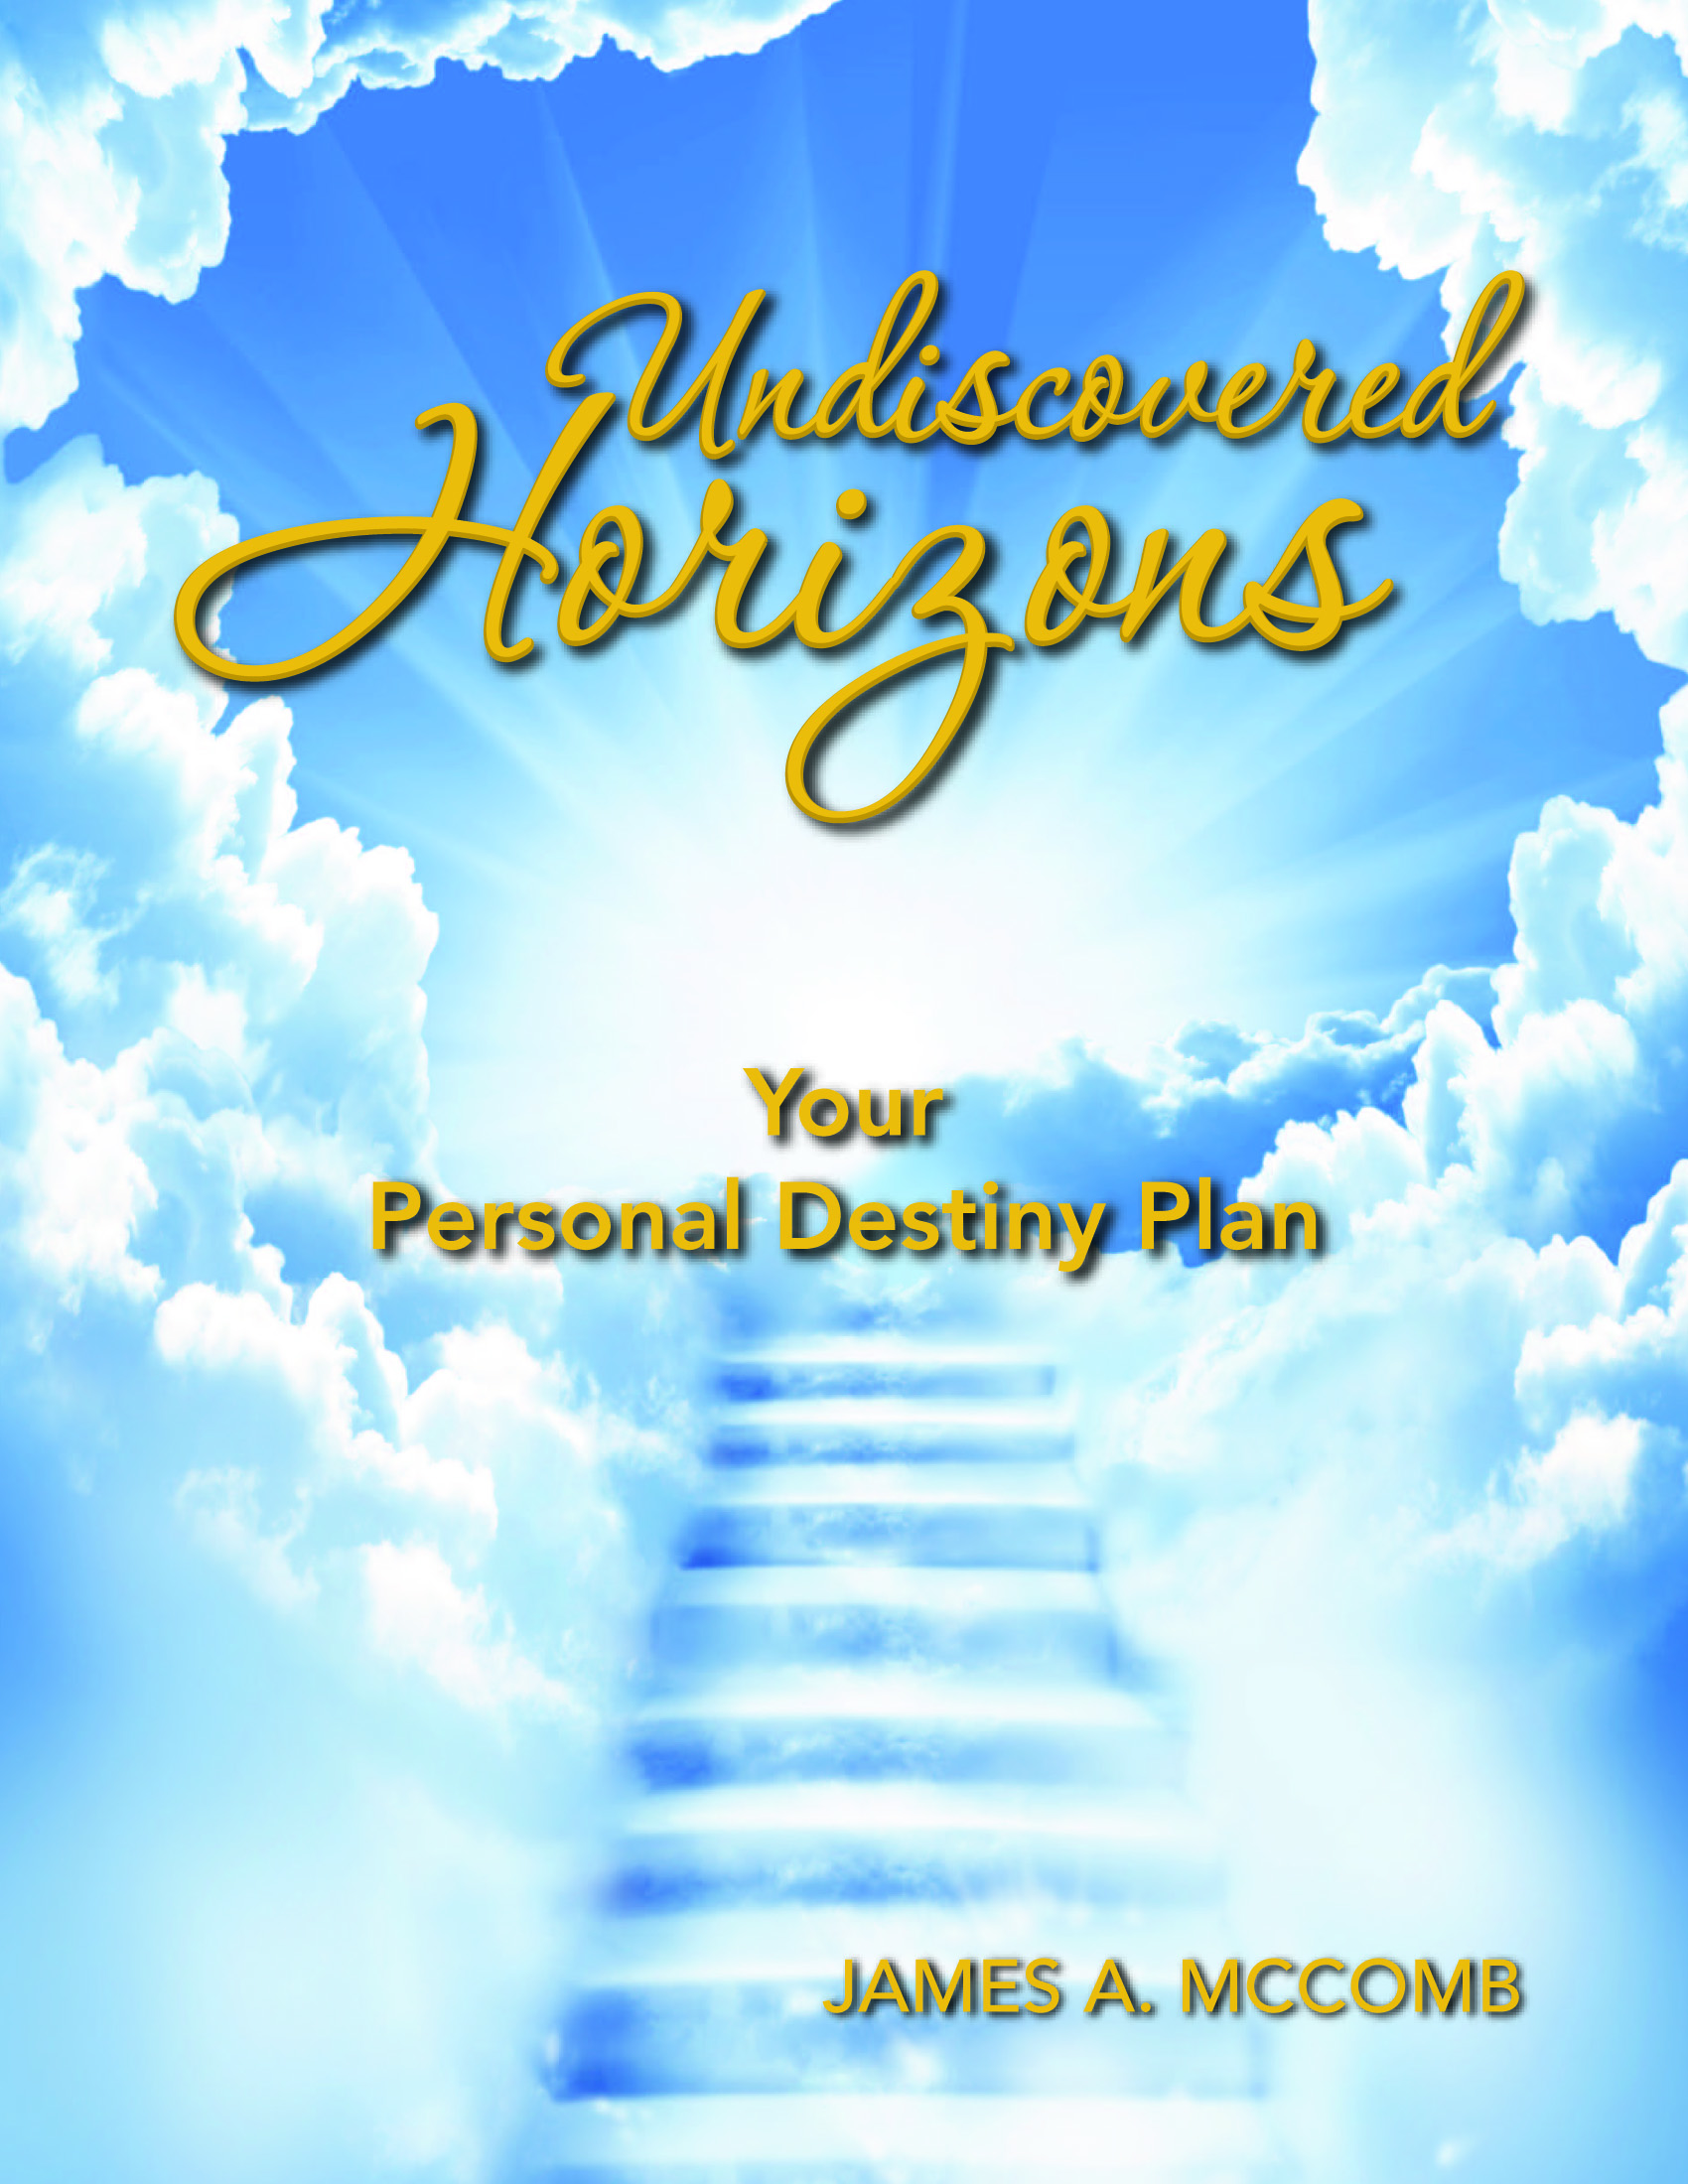 An Overview of Discovering your True Purpose with Jim McComb